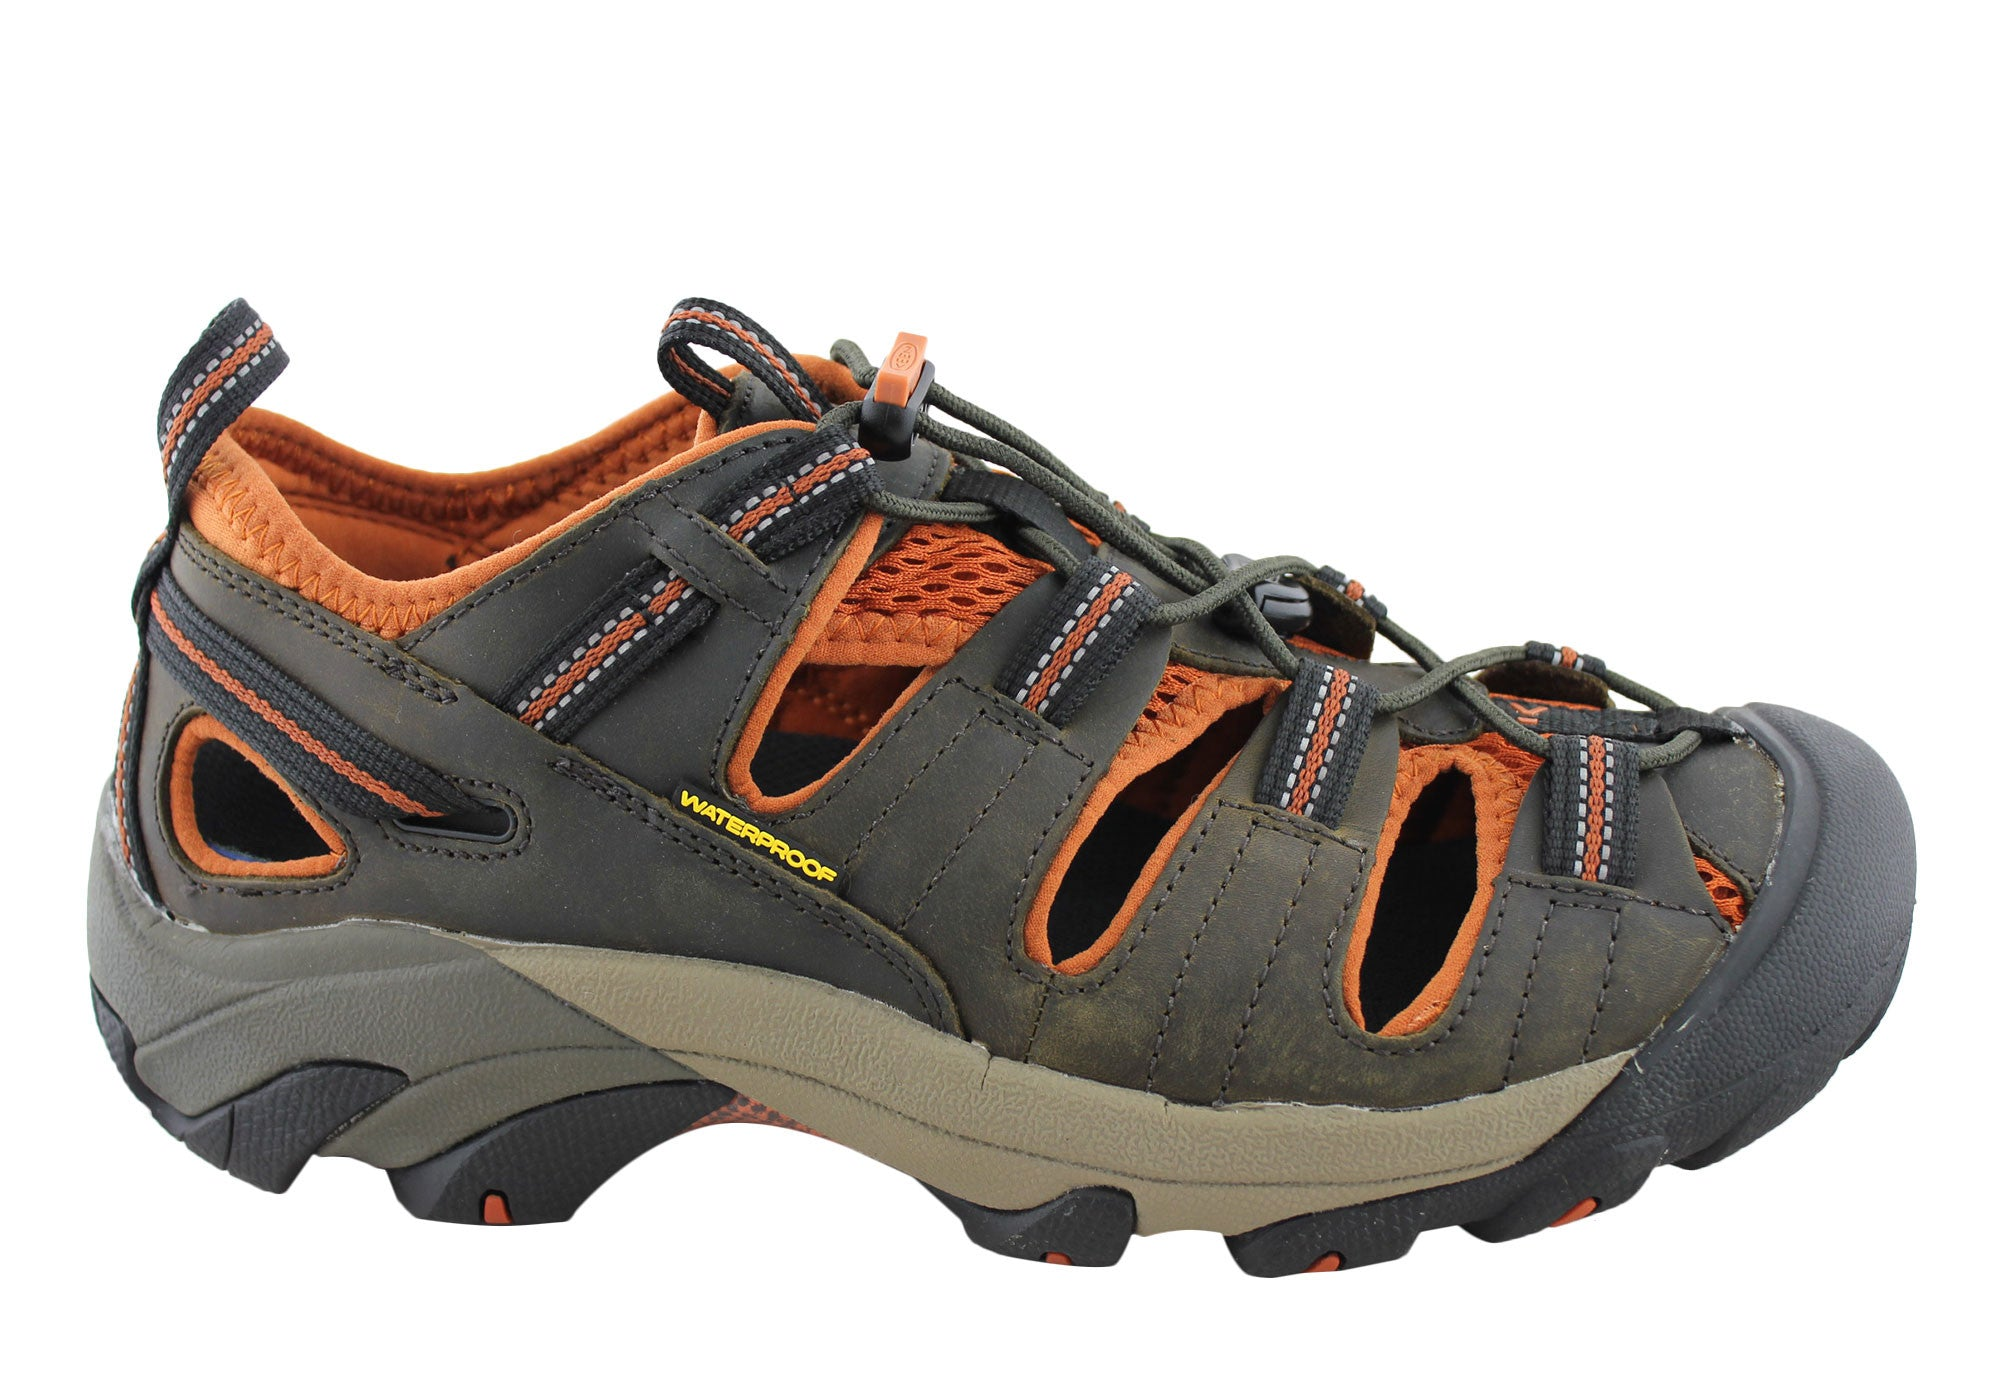 14e1295fdd18 Keen Arroyo II Mens Trail Waterproof Wide Fit Shoes